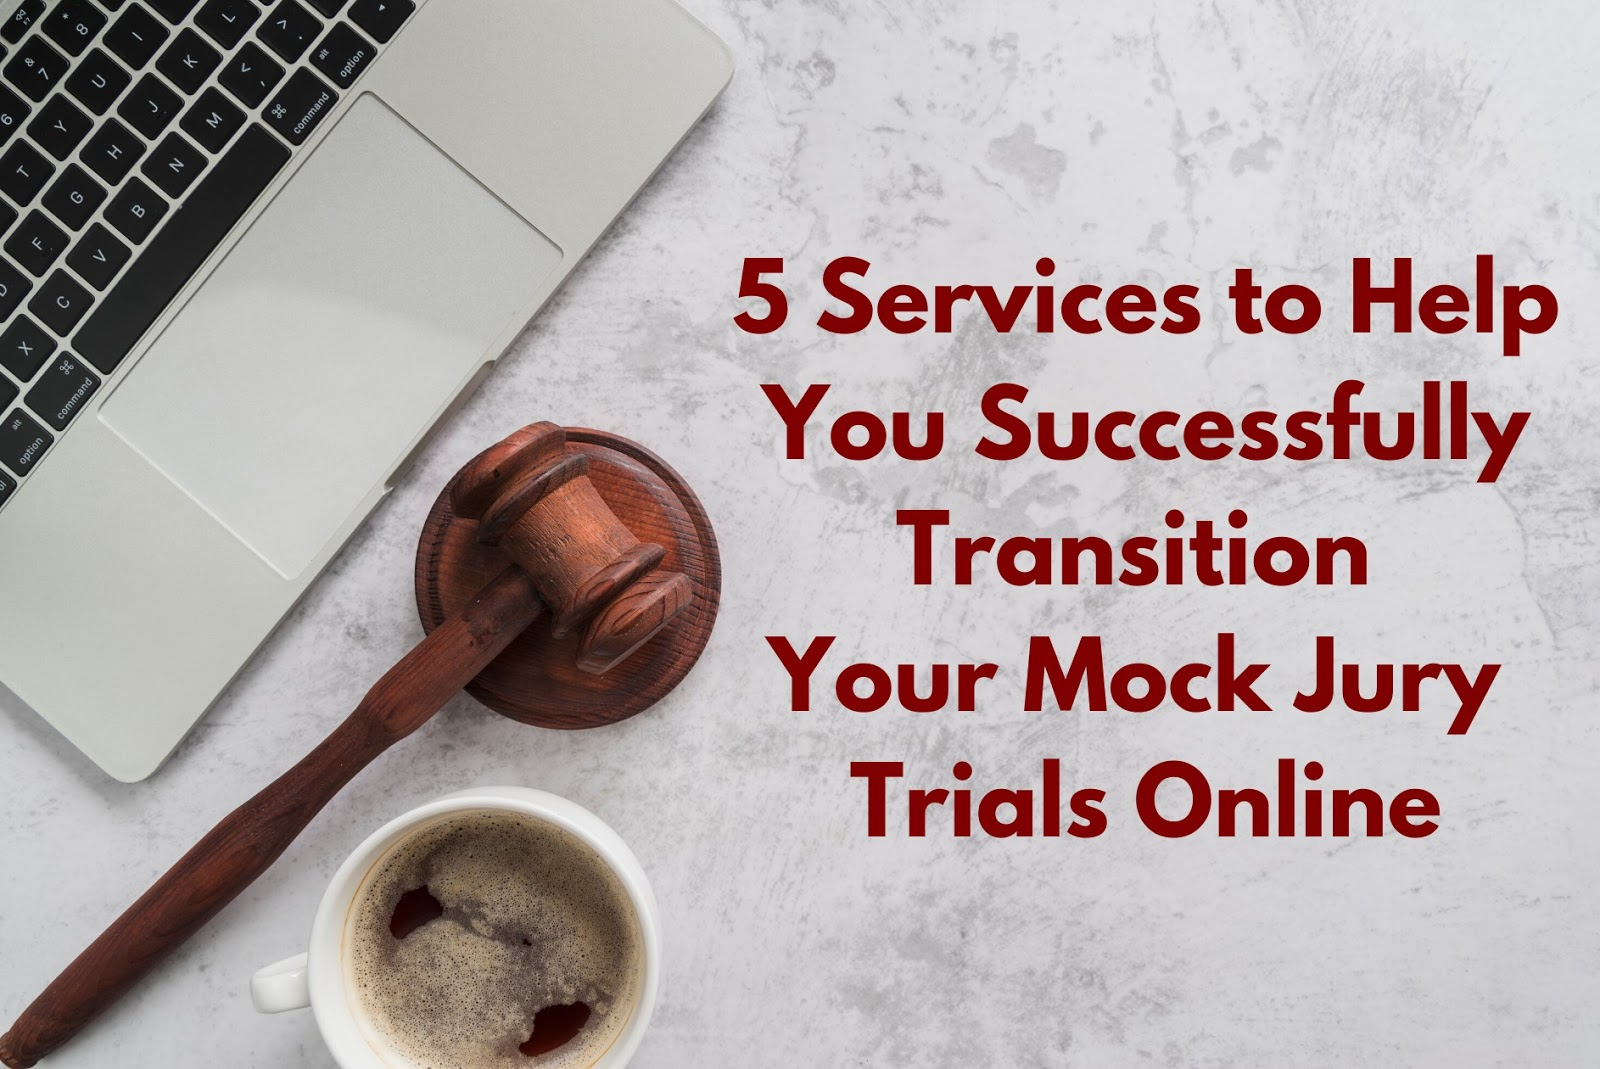 5 Services to Help You Successfully Transition Your Mock Jury Trials Online